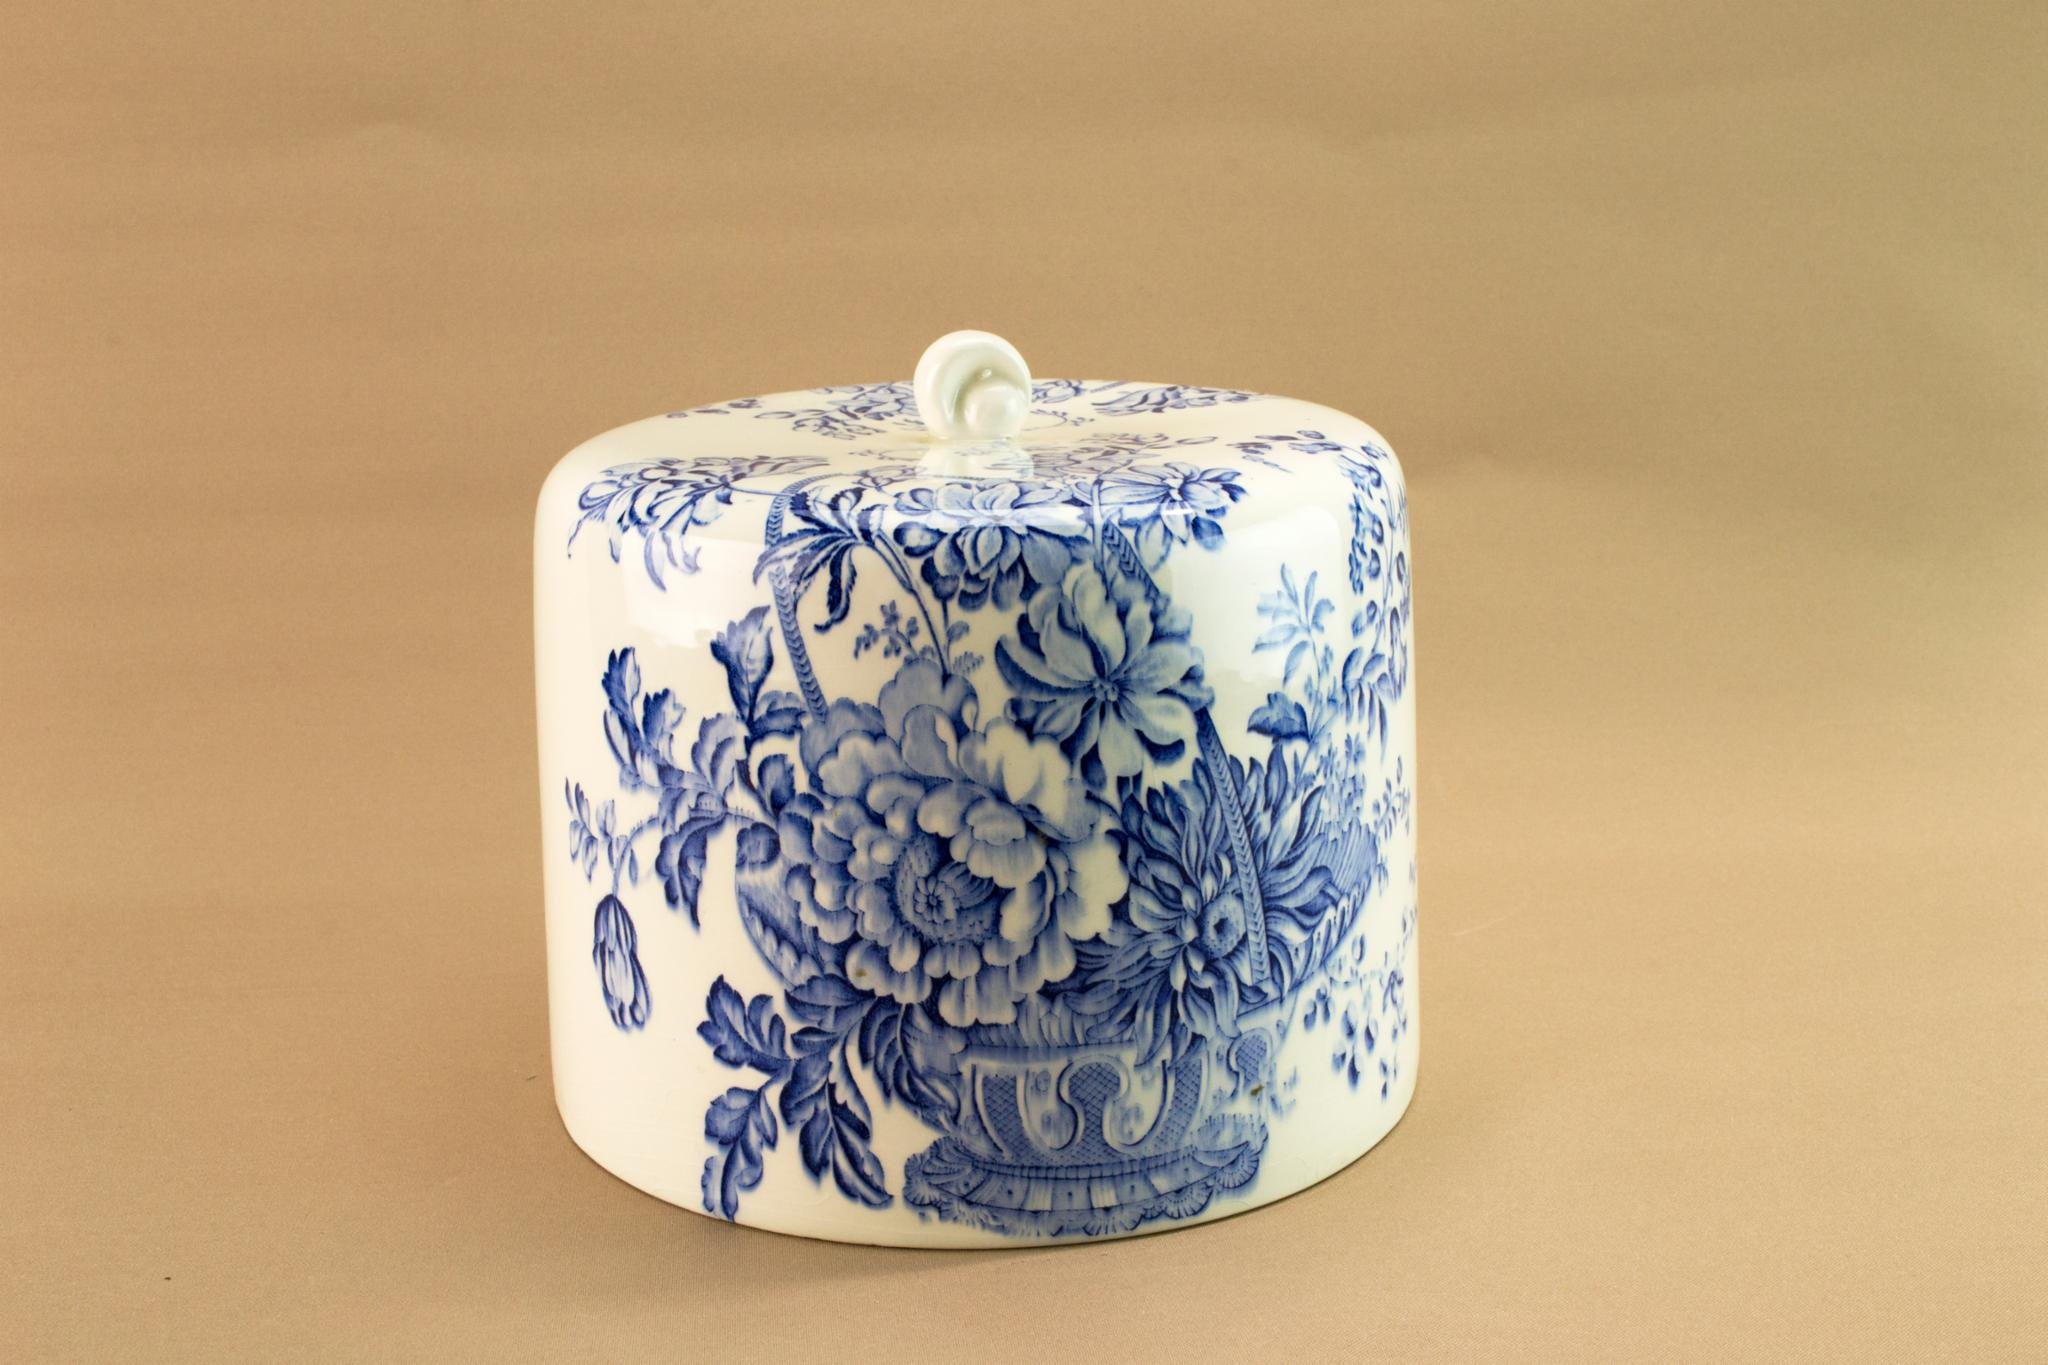 Blue & White Cheese Dome Lid Cover for Dish Platter Vintage English c 1930